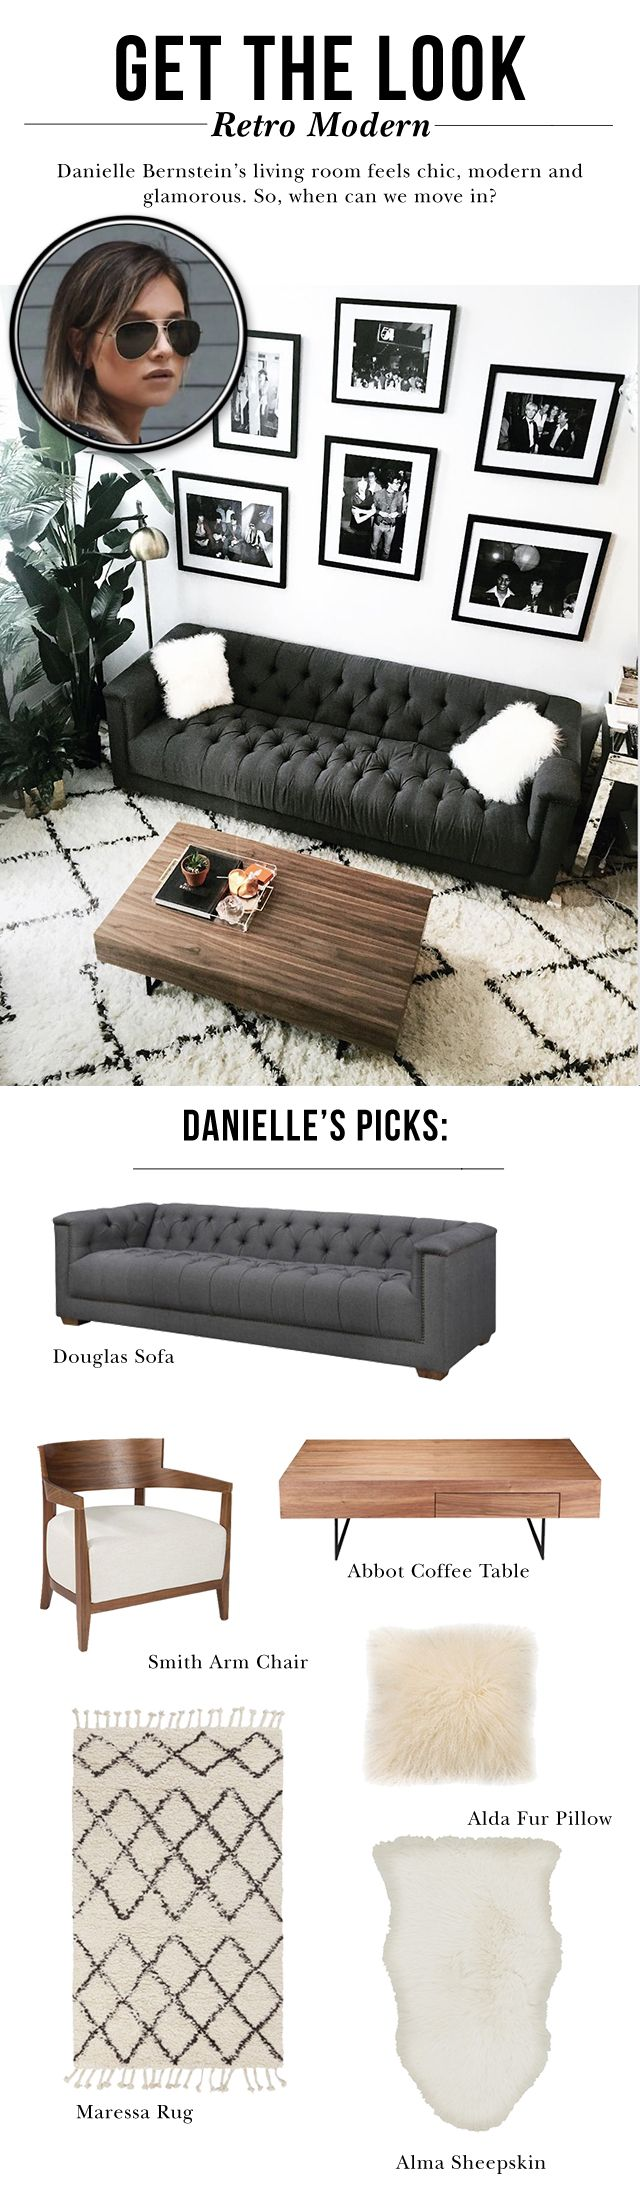 We Wore What's Danielle Bernstein uses nothing but neutrals to dress up her living room. We're loving it.